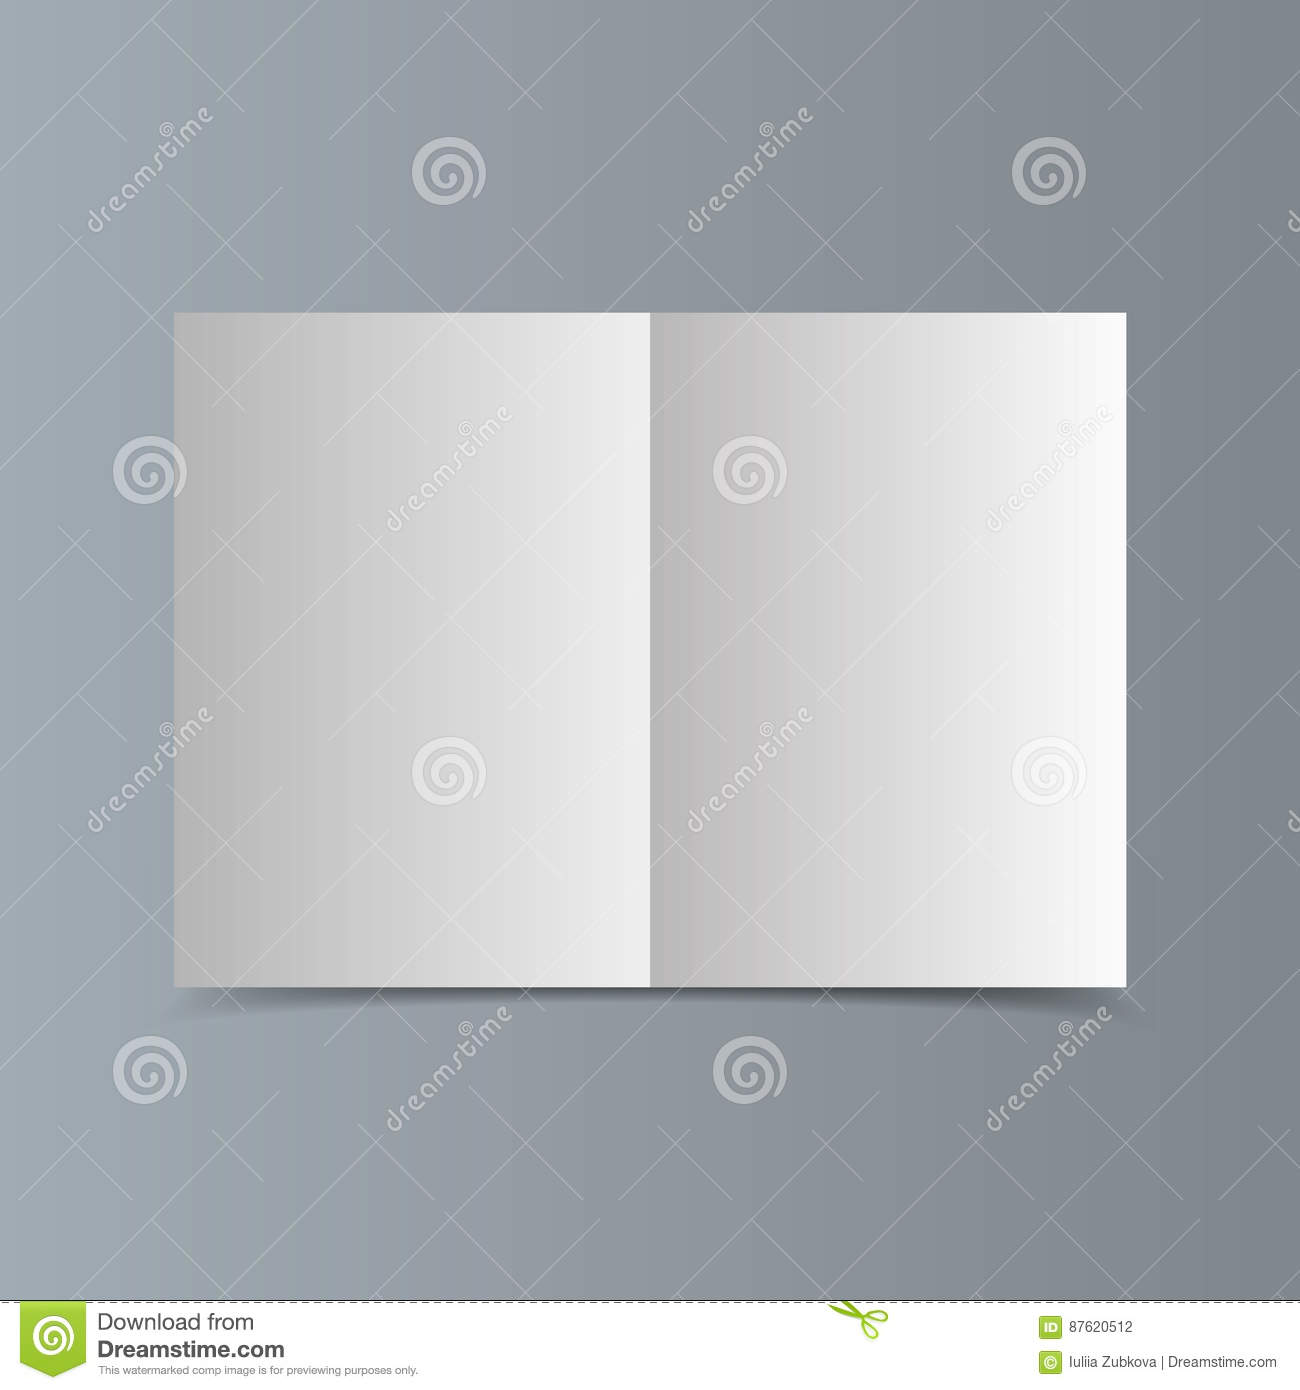 empty horizontal white paper brochure mockup with traces of the